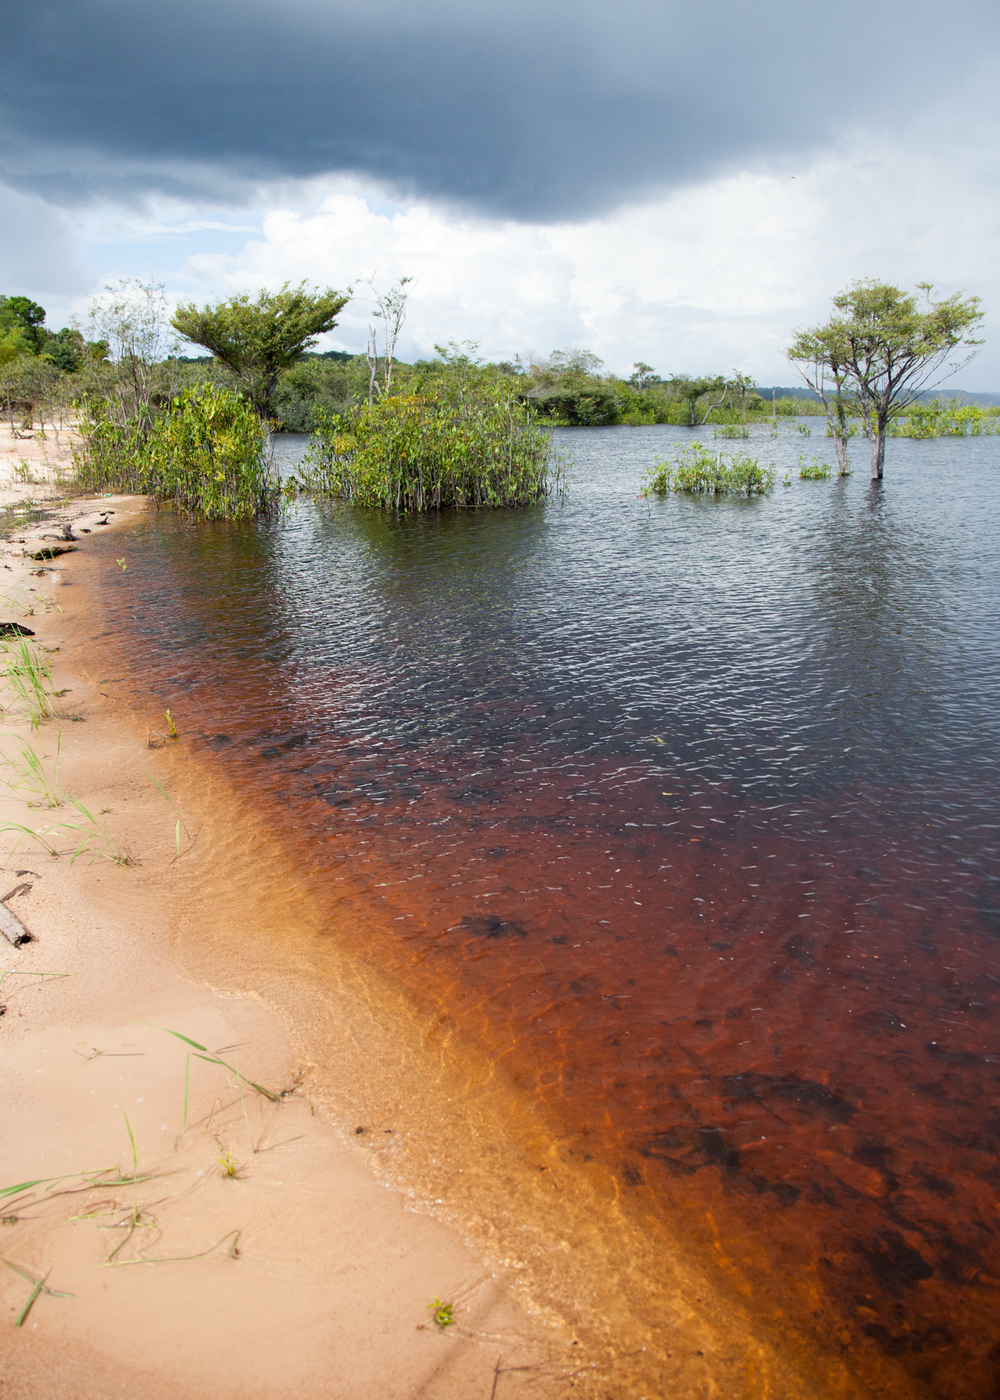 You can really see the colour of the Rio Negro, just outside the village. It looks like tea, more than river water. The colour comes from the tannins in the trees, that leach into the water.